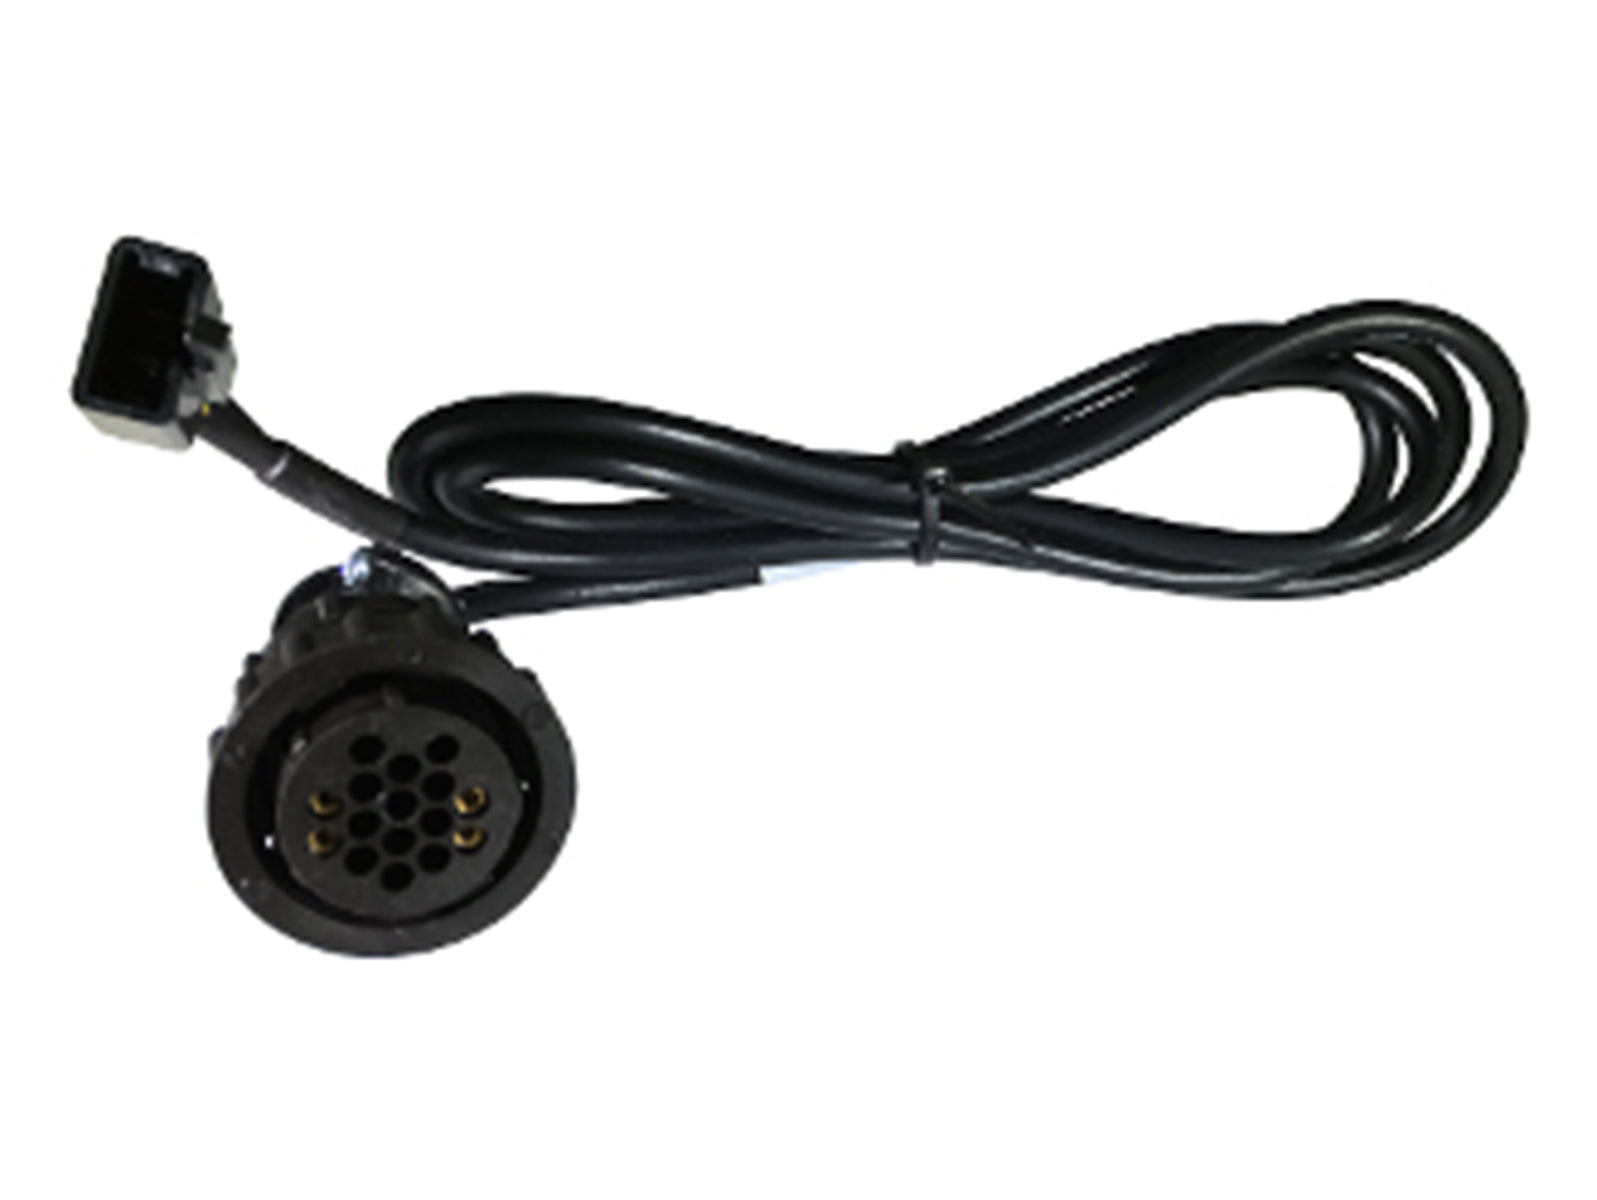 TEXA Bike SYM Cable for Dell Orto (AP48)